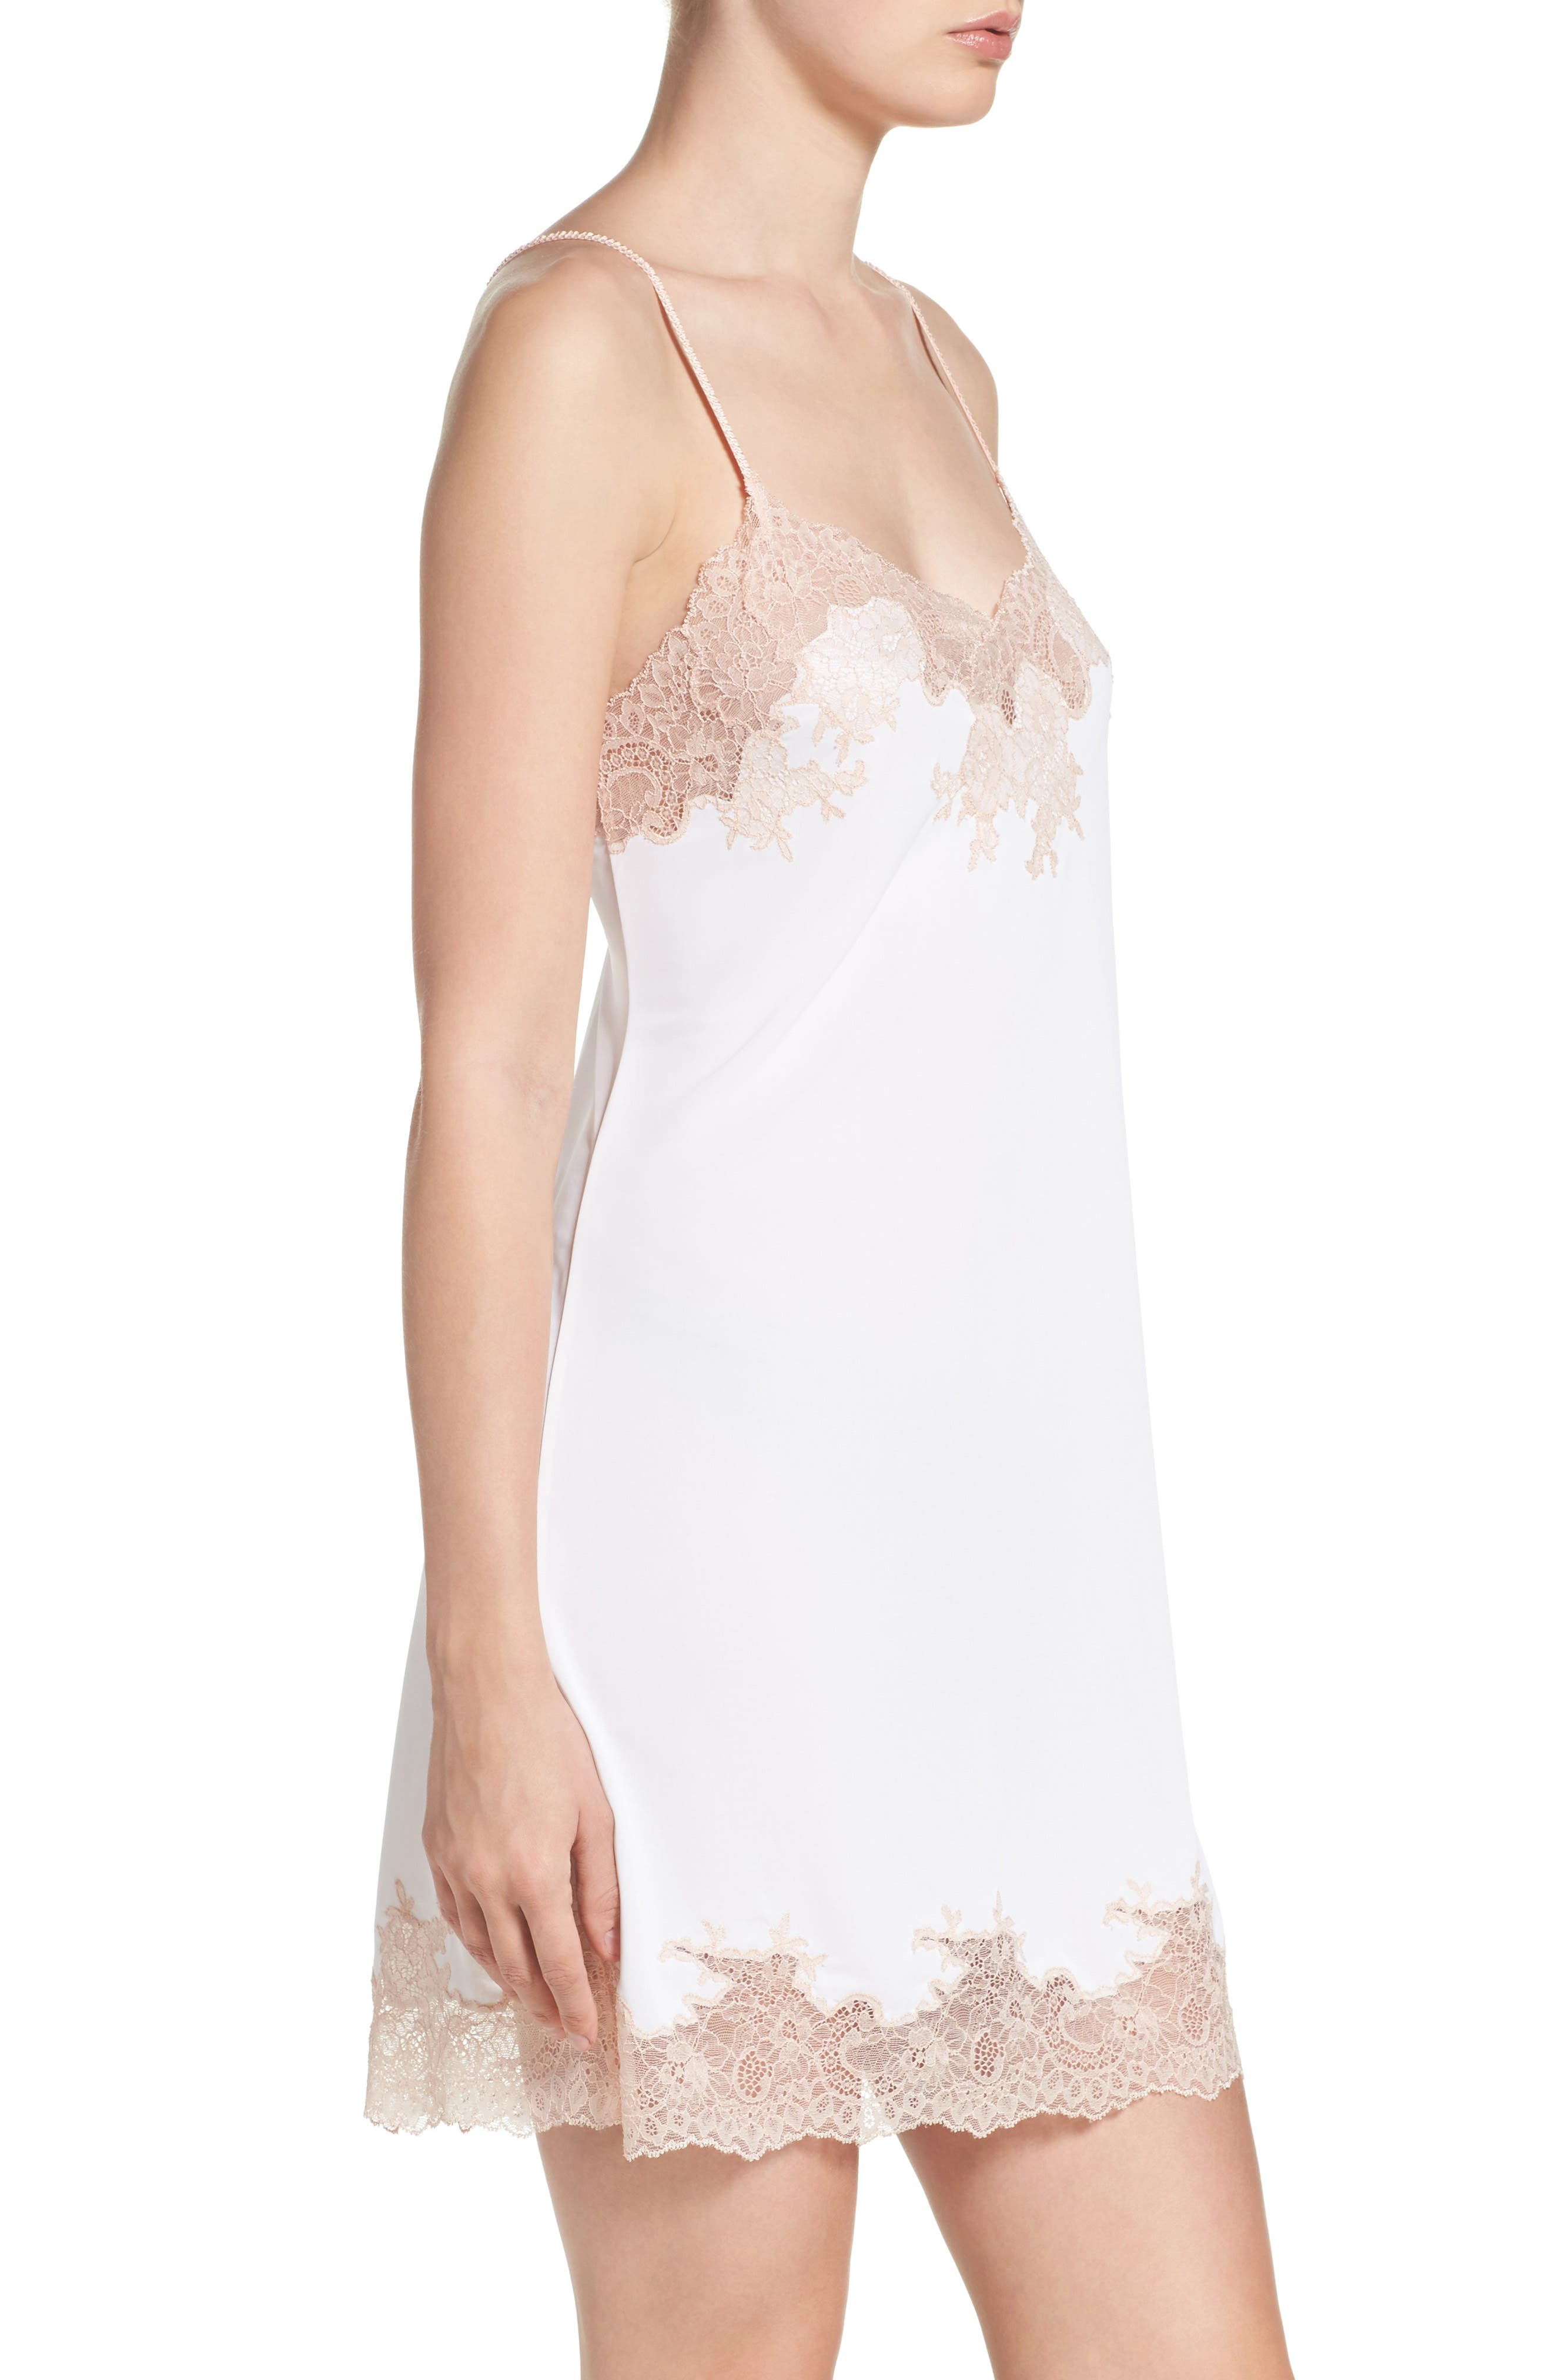 Enchant Chemise,                             Alternate thumbnail 3, color,                             IVORY/ CAMEO ROSE LACE